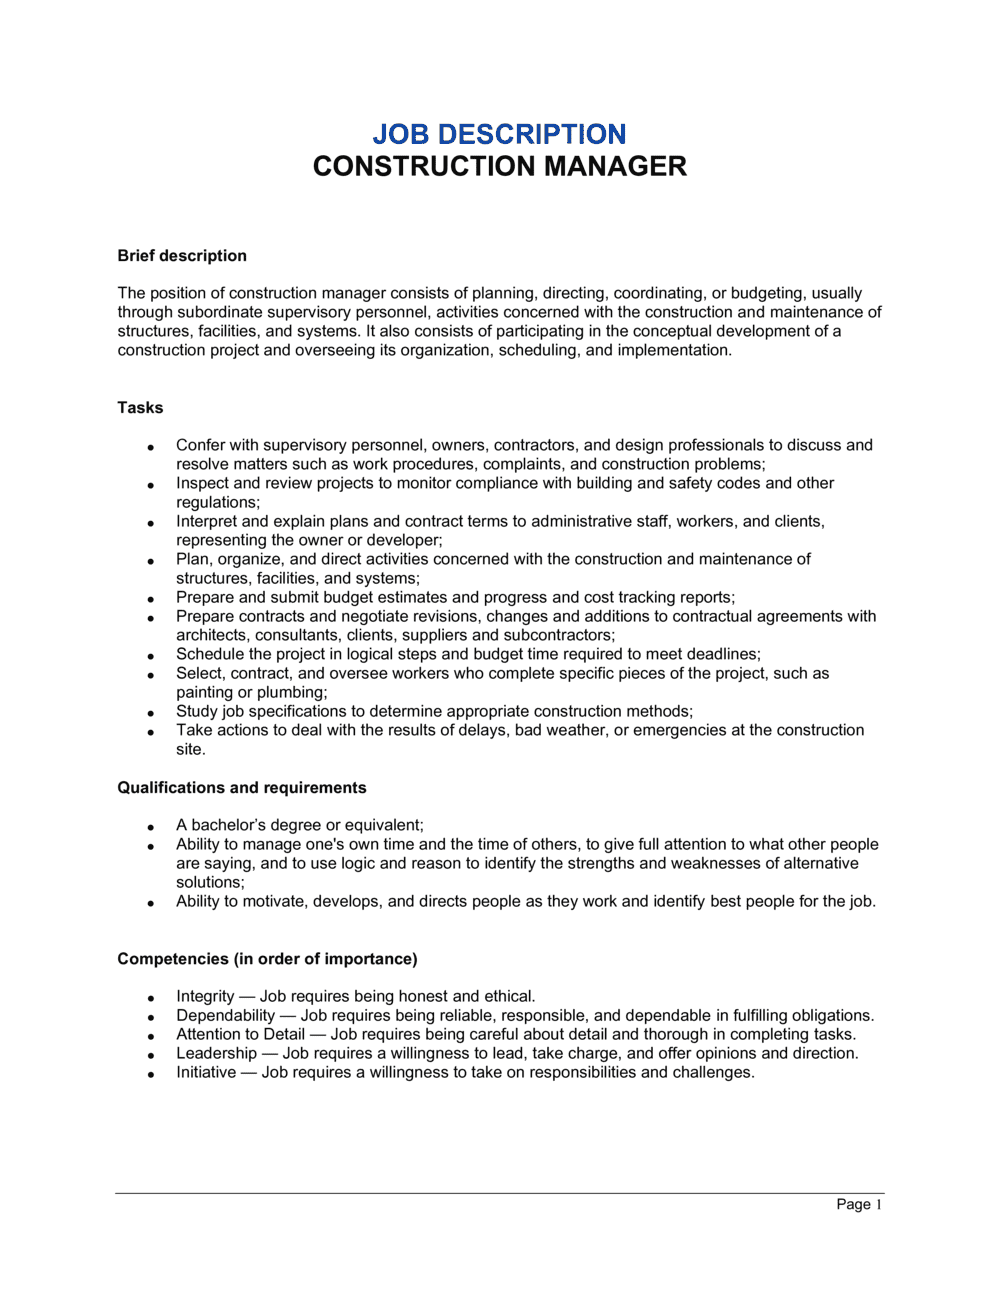 Business-in-a-Box's Construction Manager Job Description Template